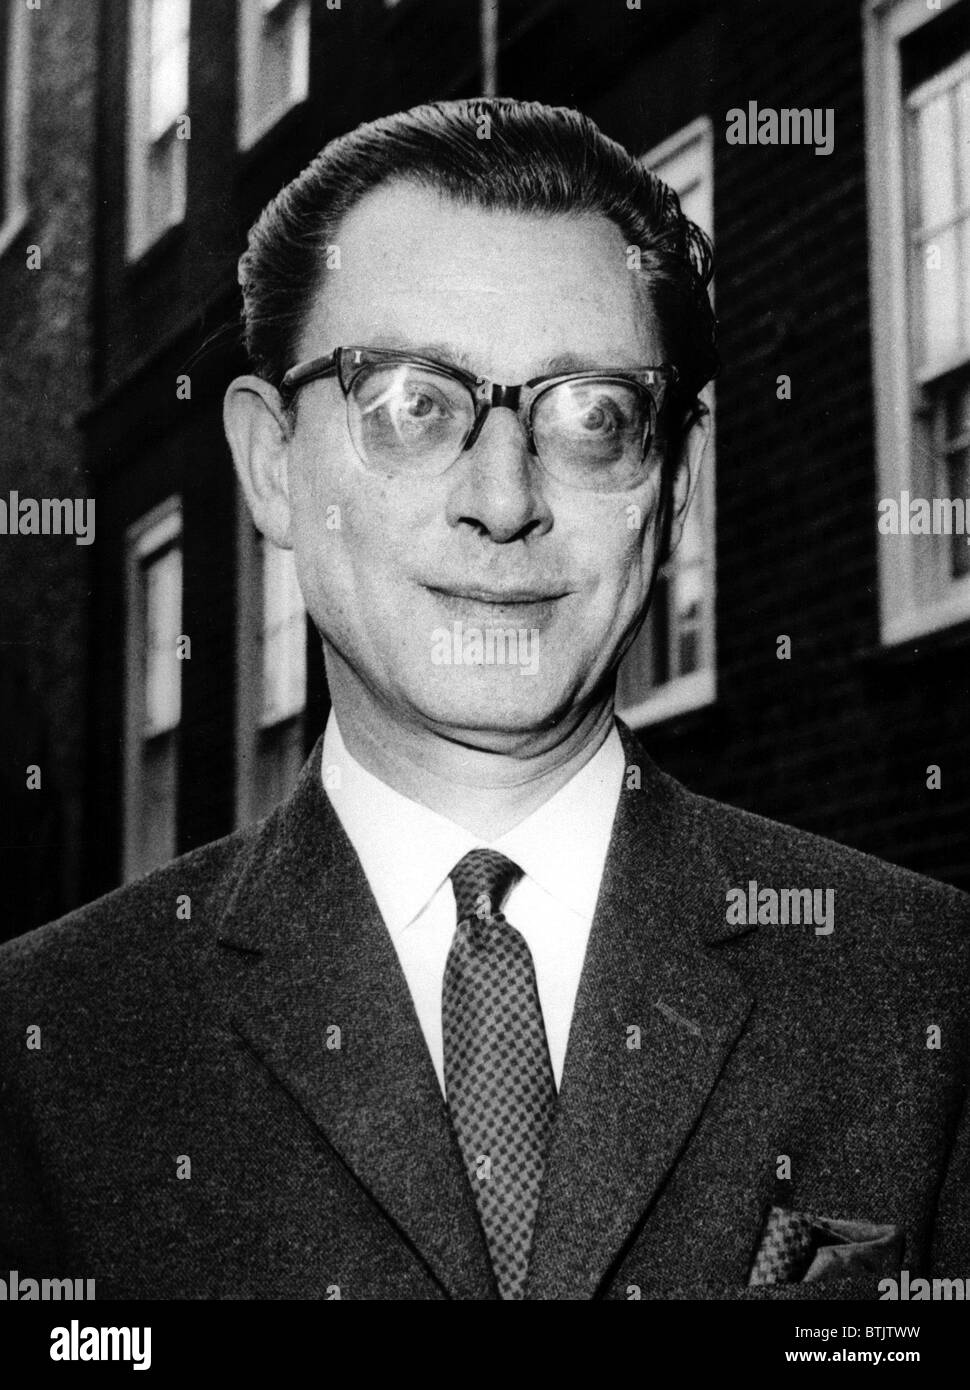 Dr. Stephen Ward, on trial on morals charges,  outside the Old Bailey, London, July 22, 1963 - Stock Image